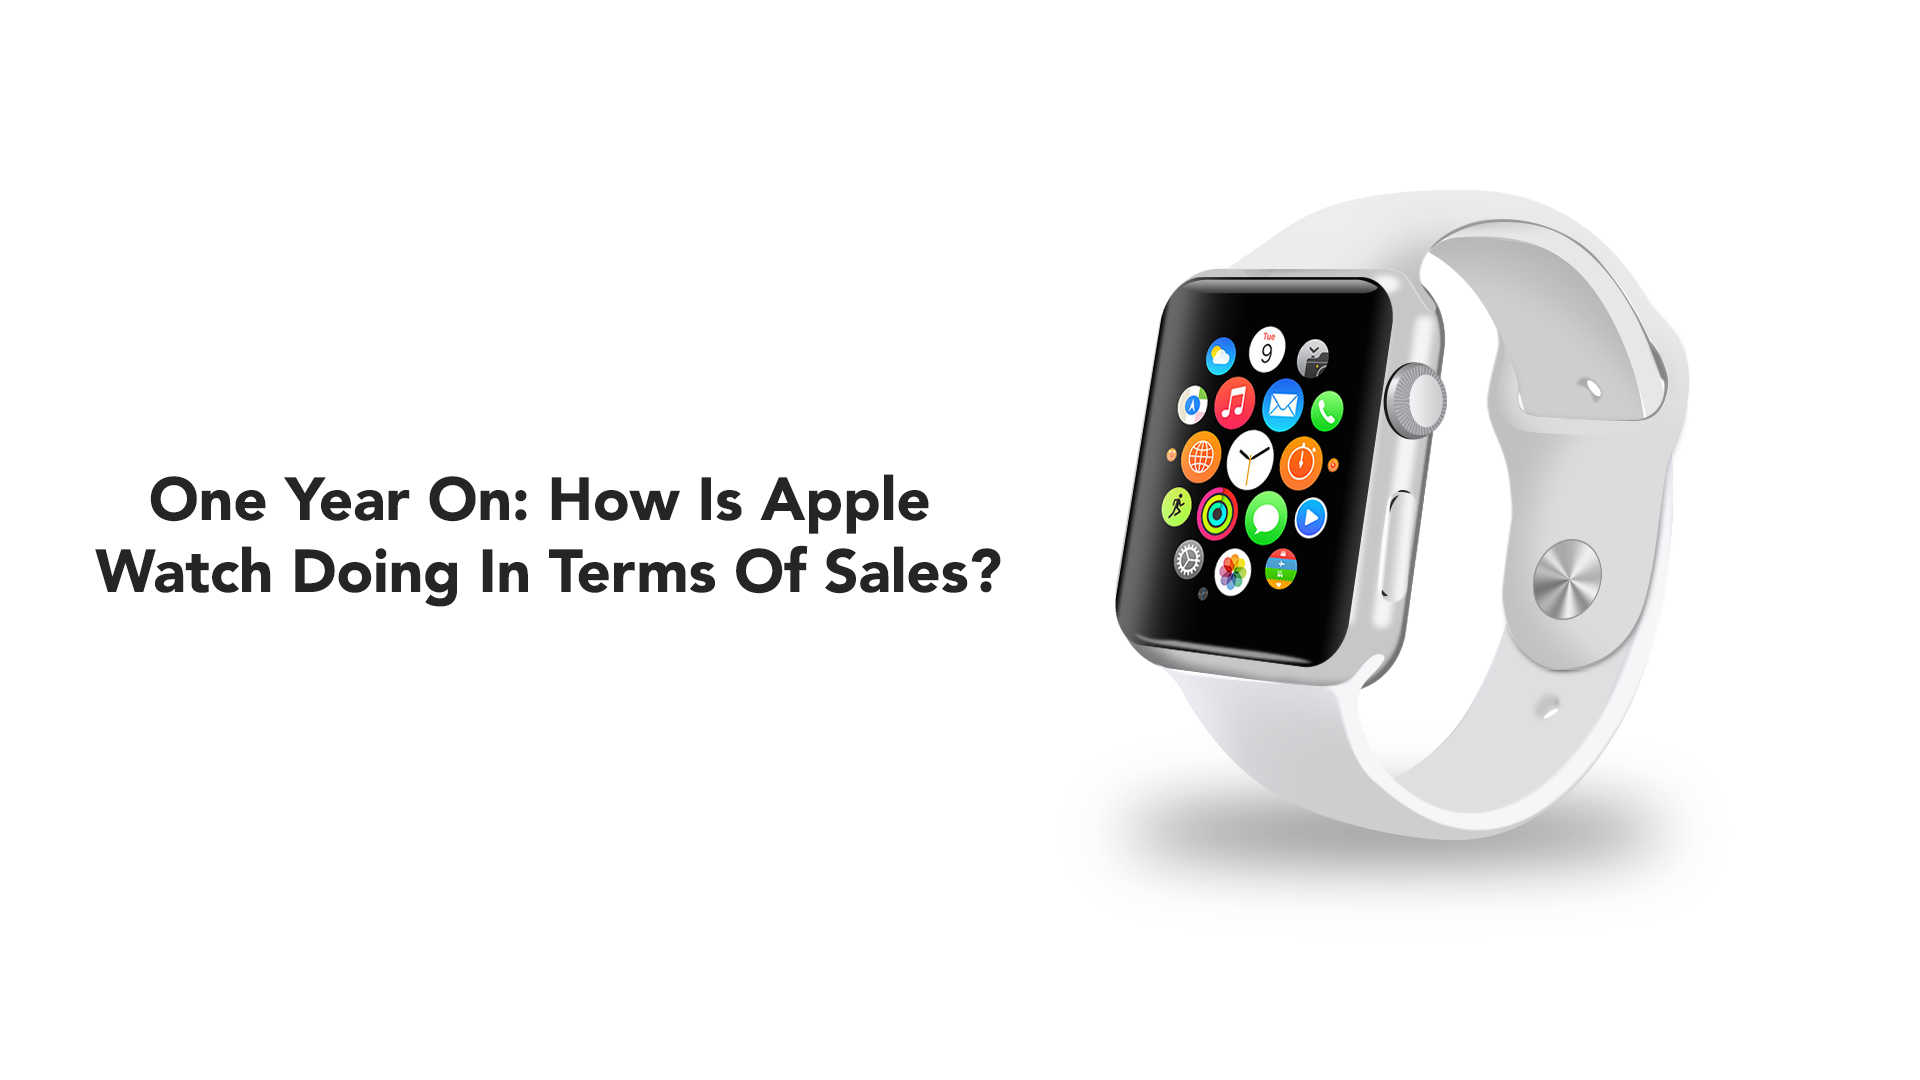 Analyzing Apple Watch performance one year after launch